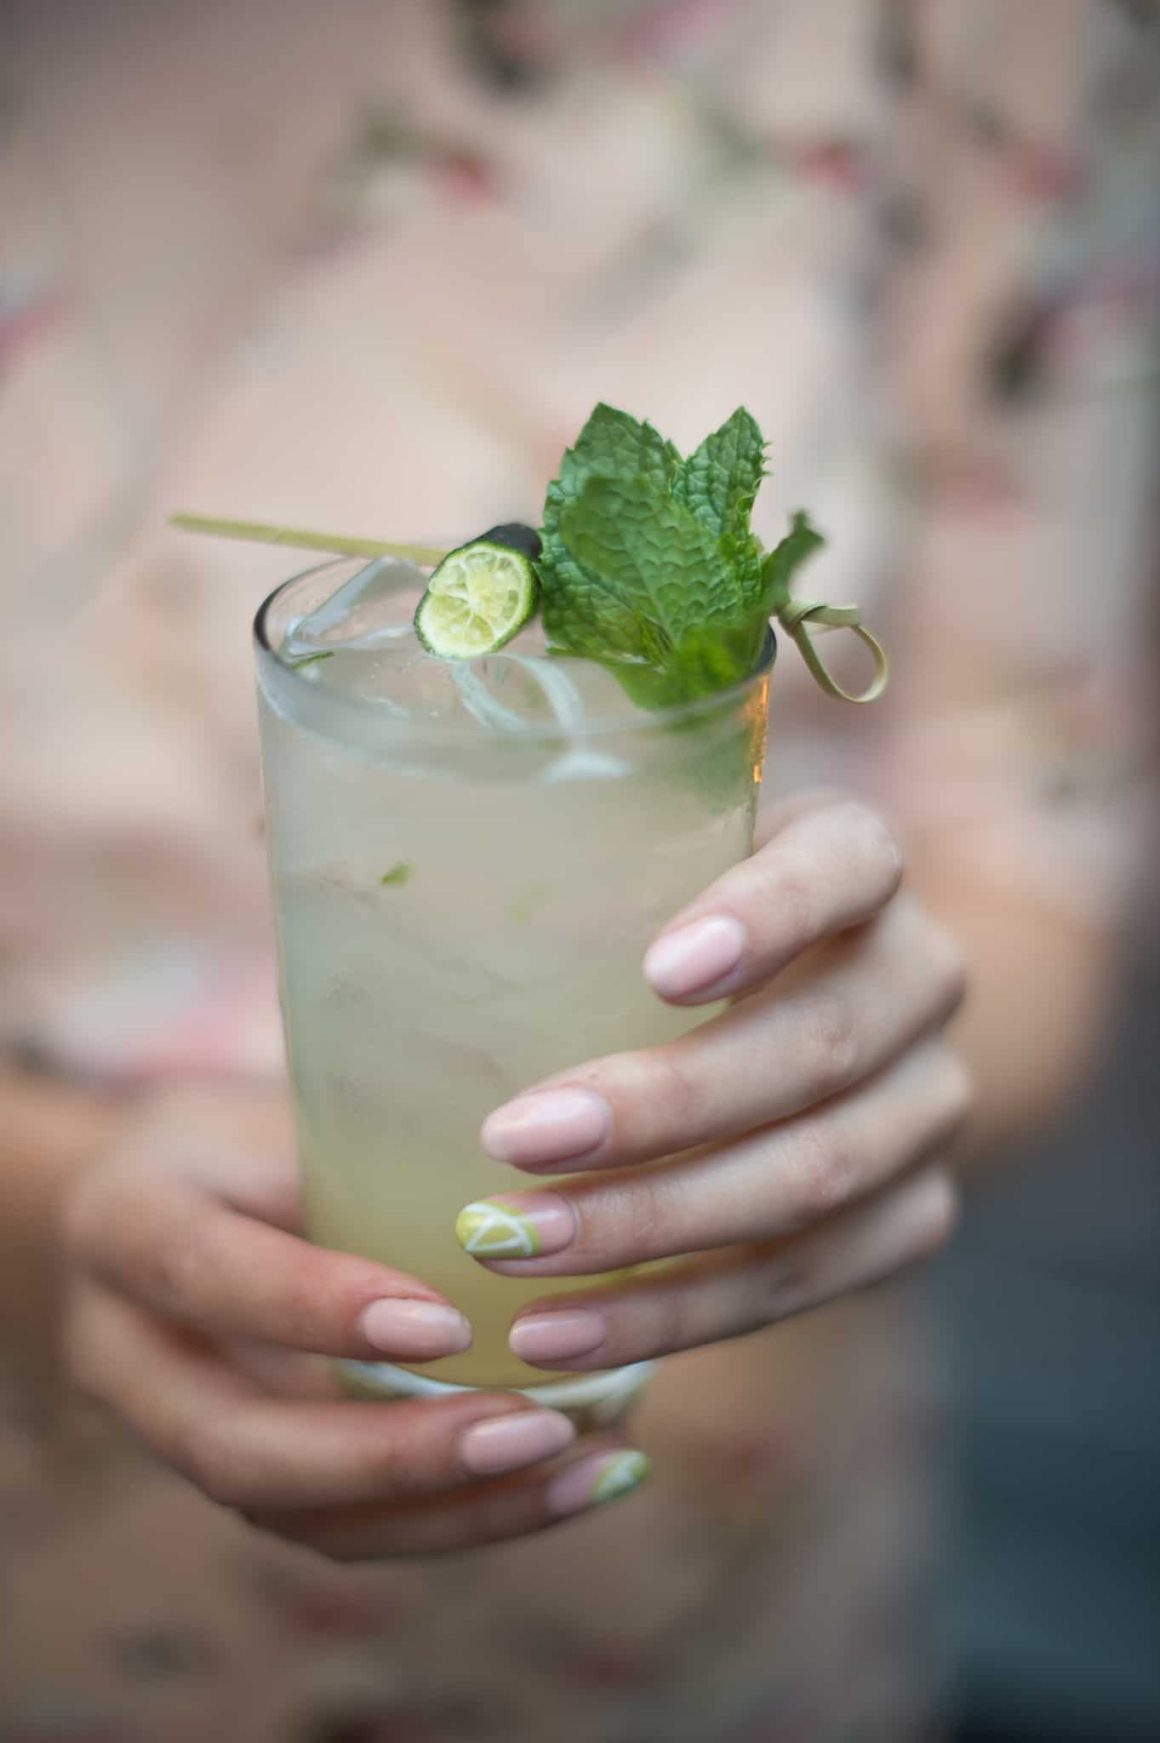 THE PERFECT COCKTAIL FOR THE HOLIDAY WEEKEND (AND HOW TO MAKE IT!) PRESENTED BY TEQUILA HERRADURA